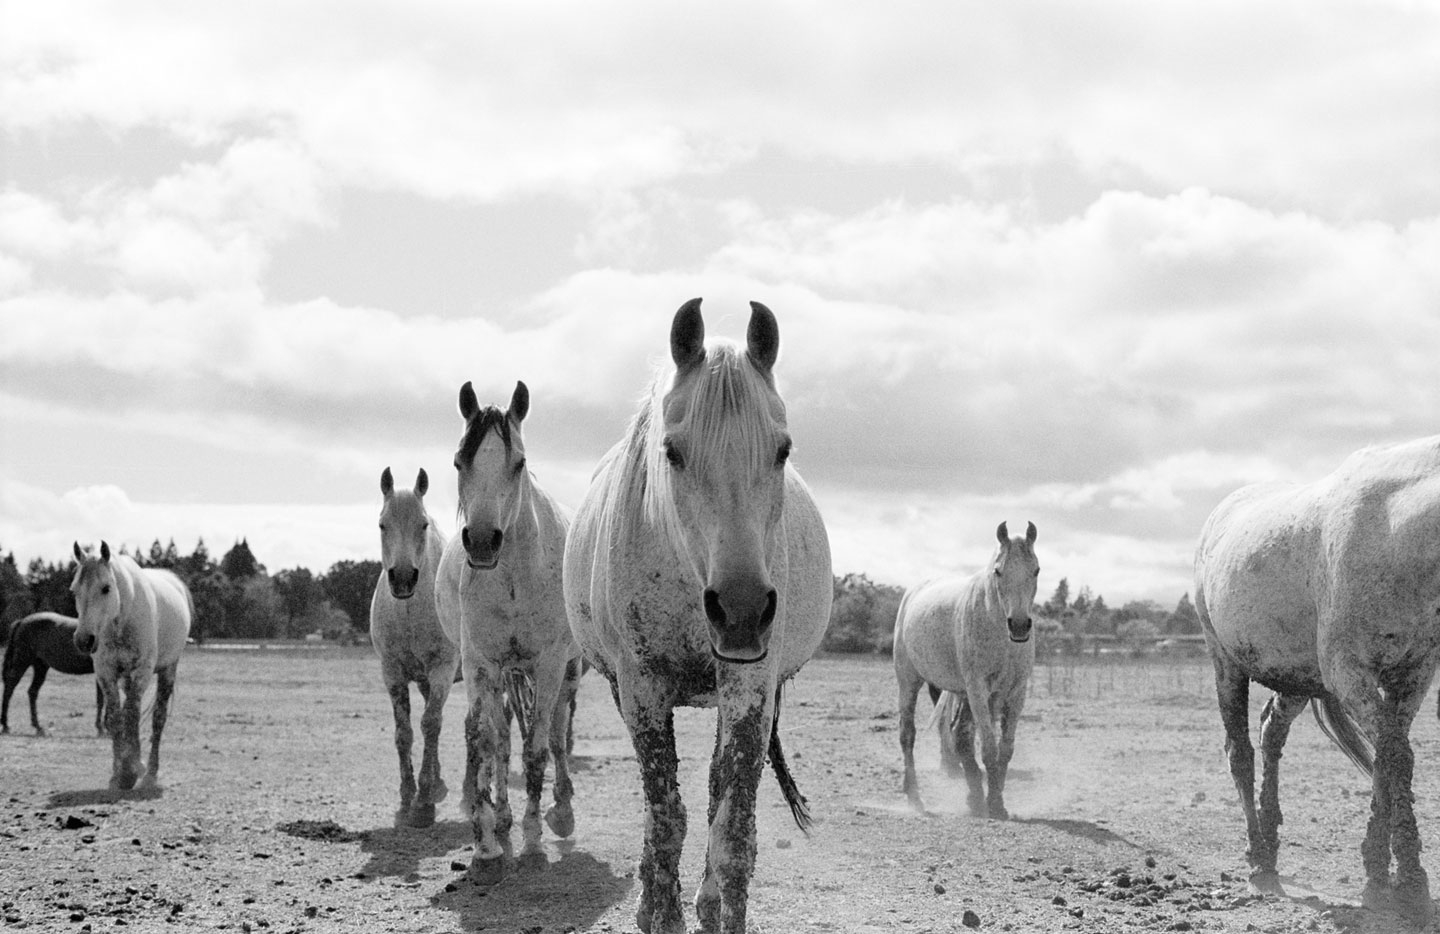 photographer Molly Stone shot wild horses